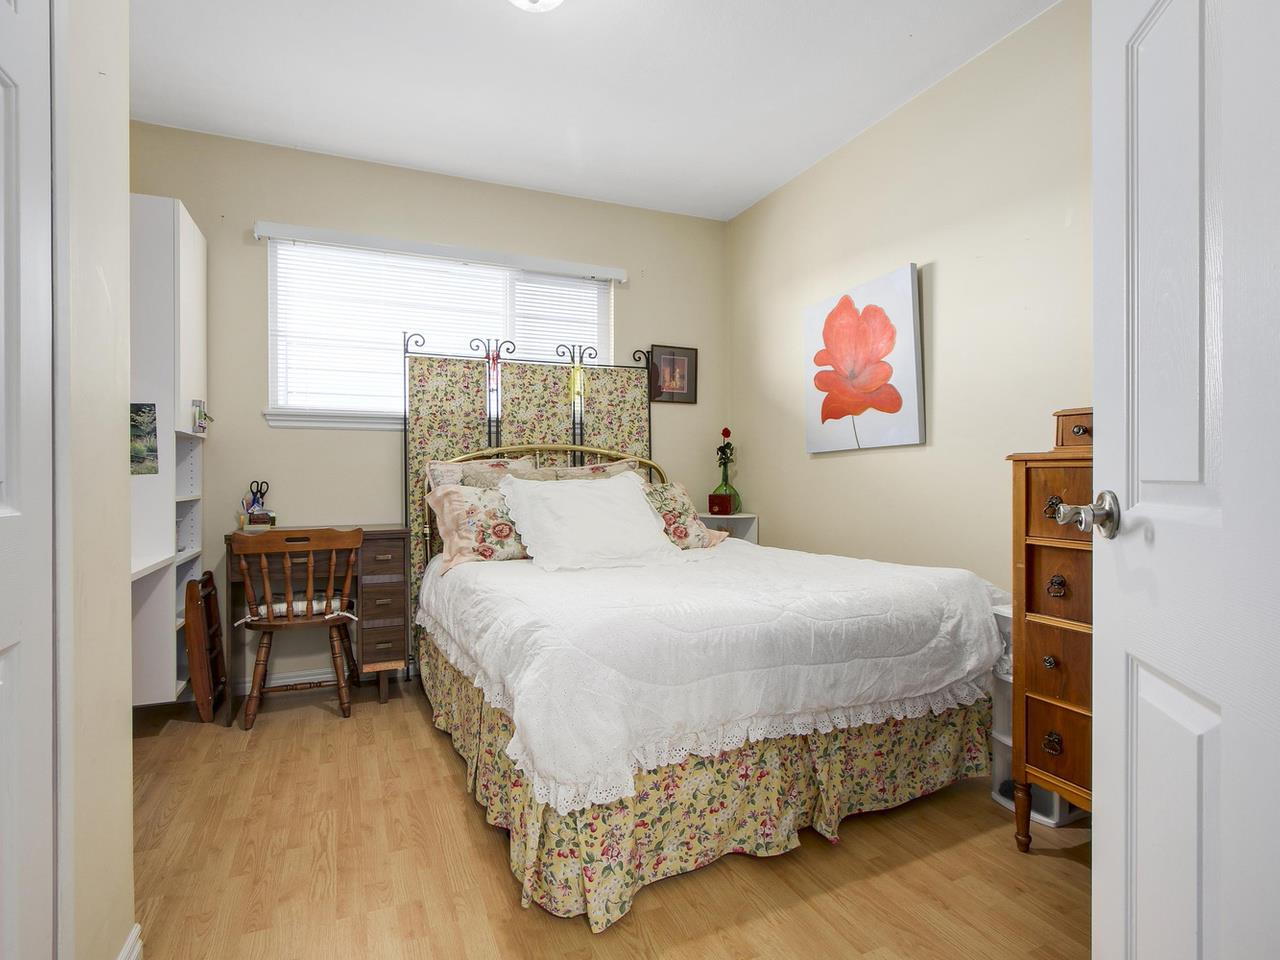 Photo 12: Photos: 1520 MACGOWAN Avenue in North Vancouver: Norgate House for sale : MLS® # R2137032